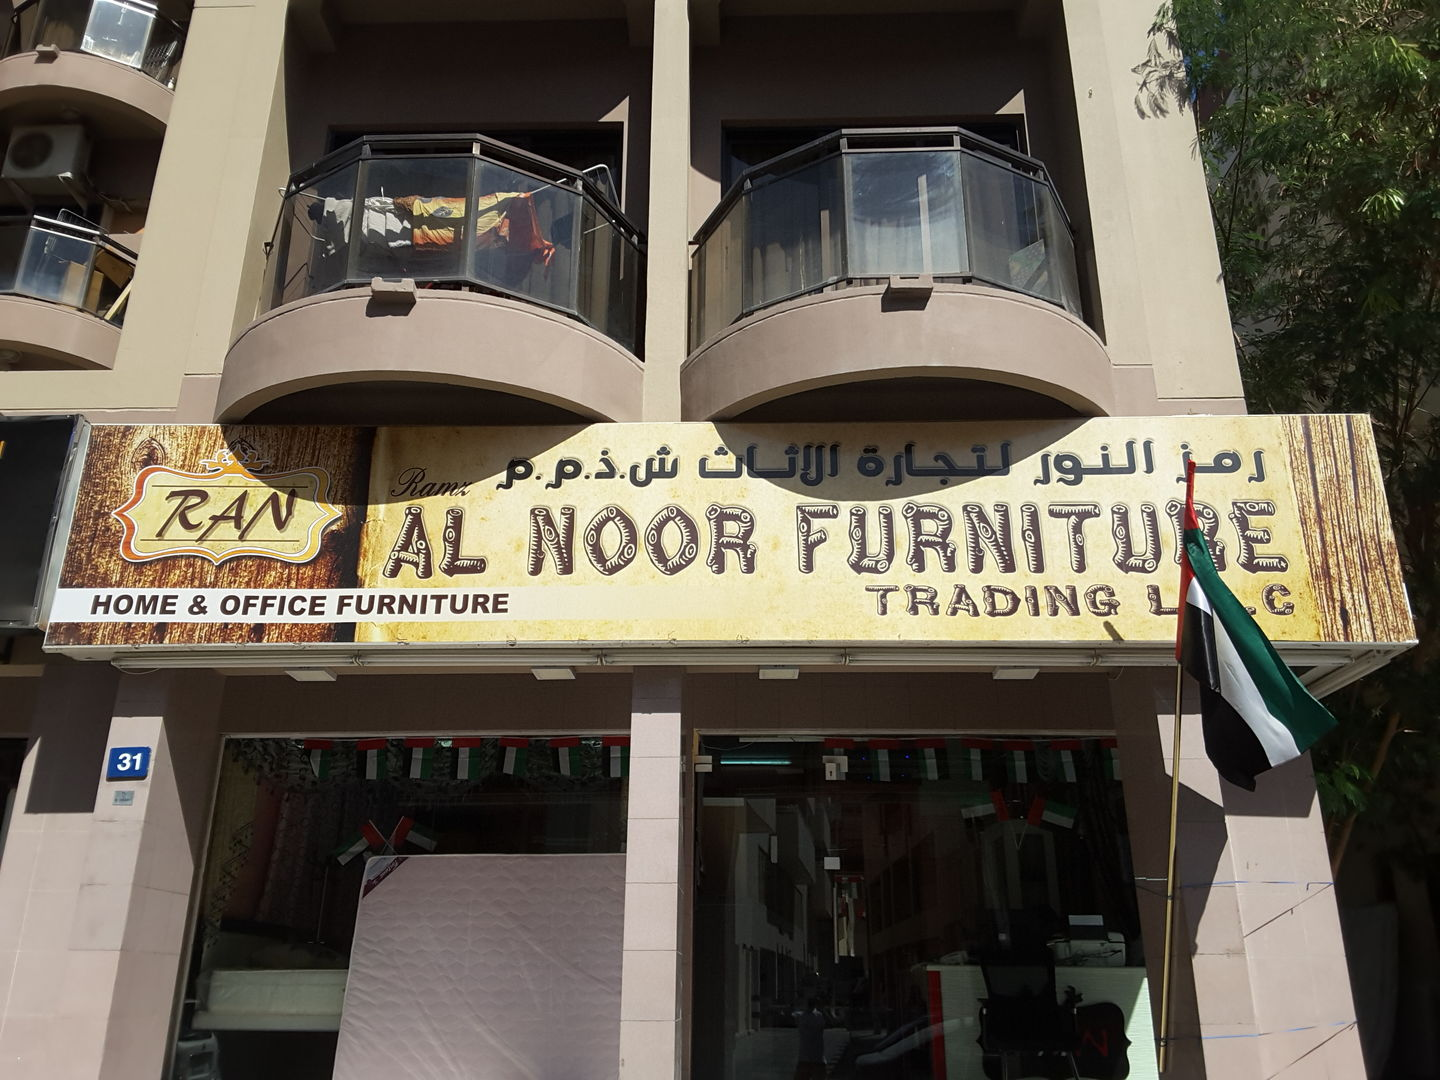 HiDubai-business-ramz-al-noor-furniture-trading-b2b-services-office-furniture-plants-decor-al-karama-dubai-2